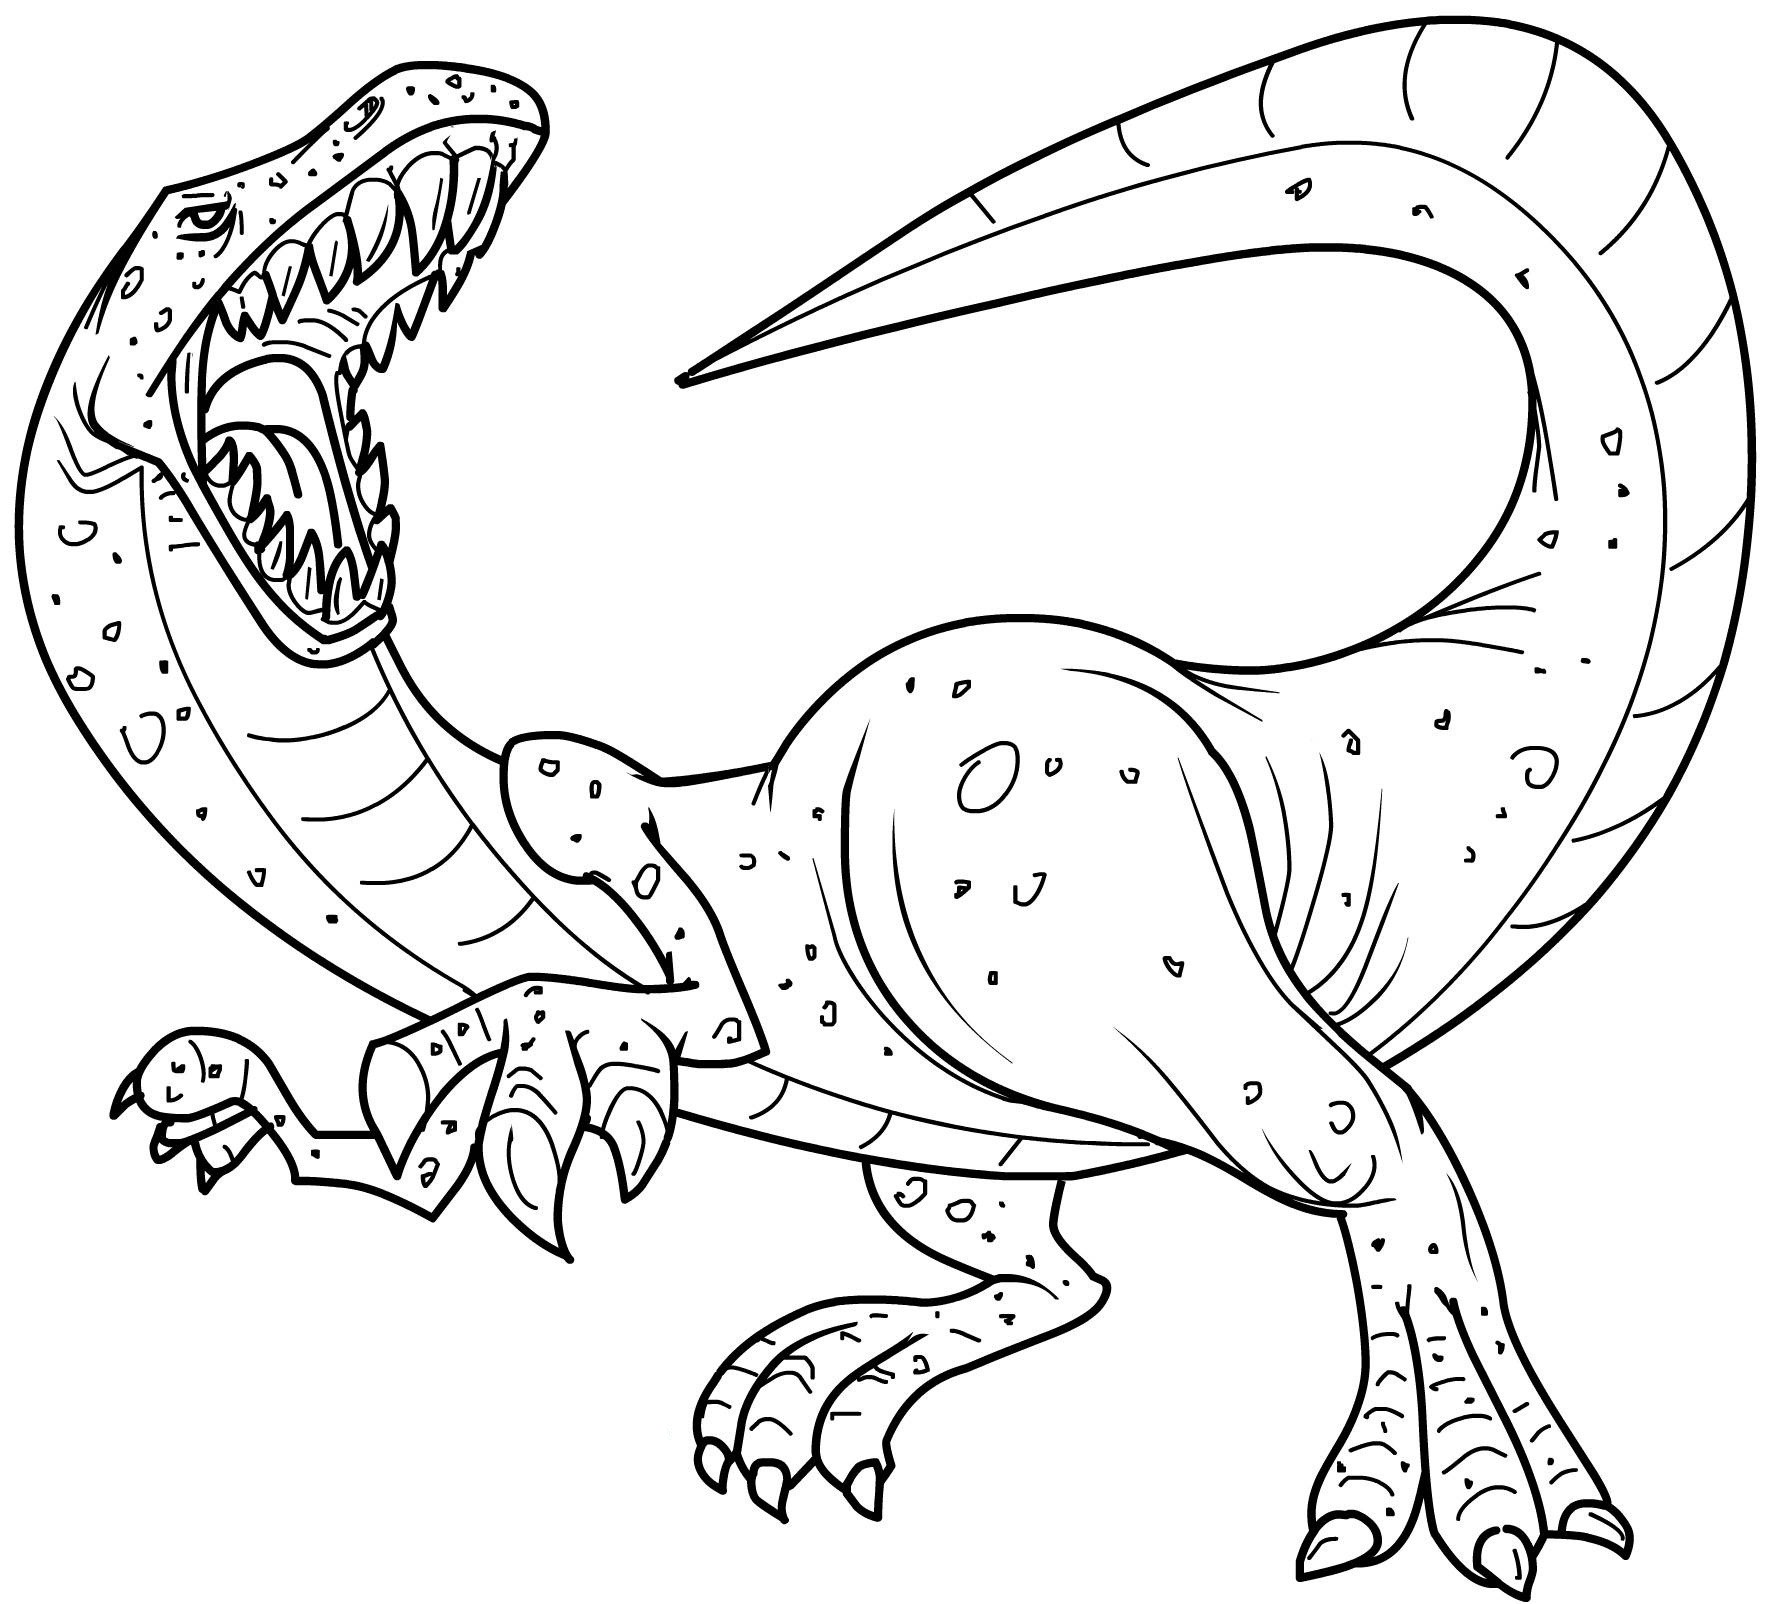 Free Printable Dinosaur Coloring Pages For Kids Dinosaur Coloring Pages Free